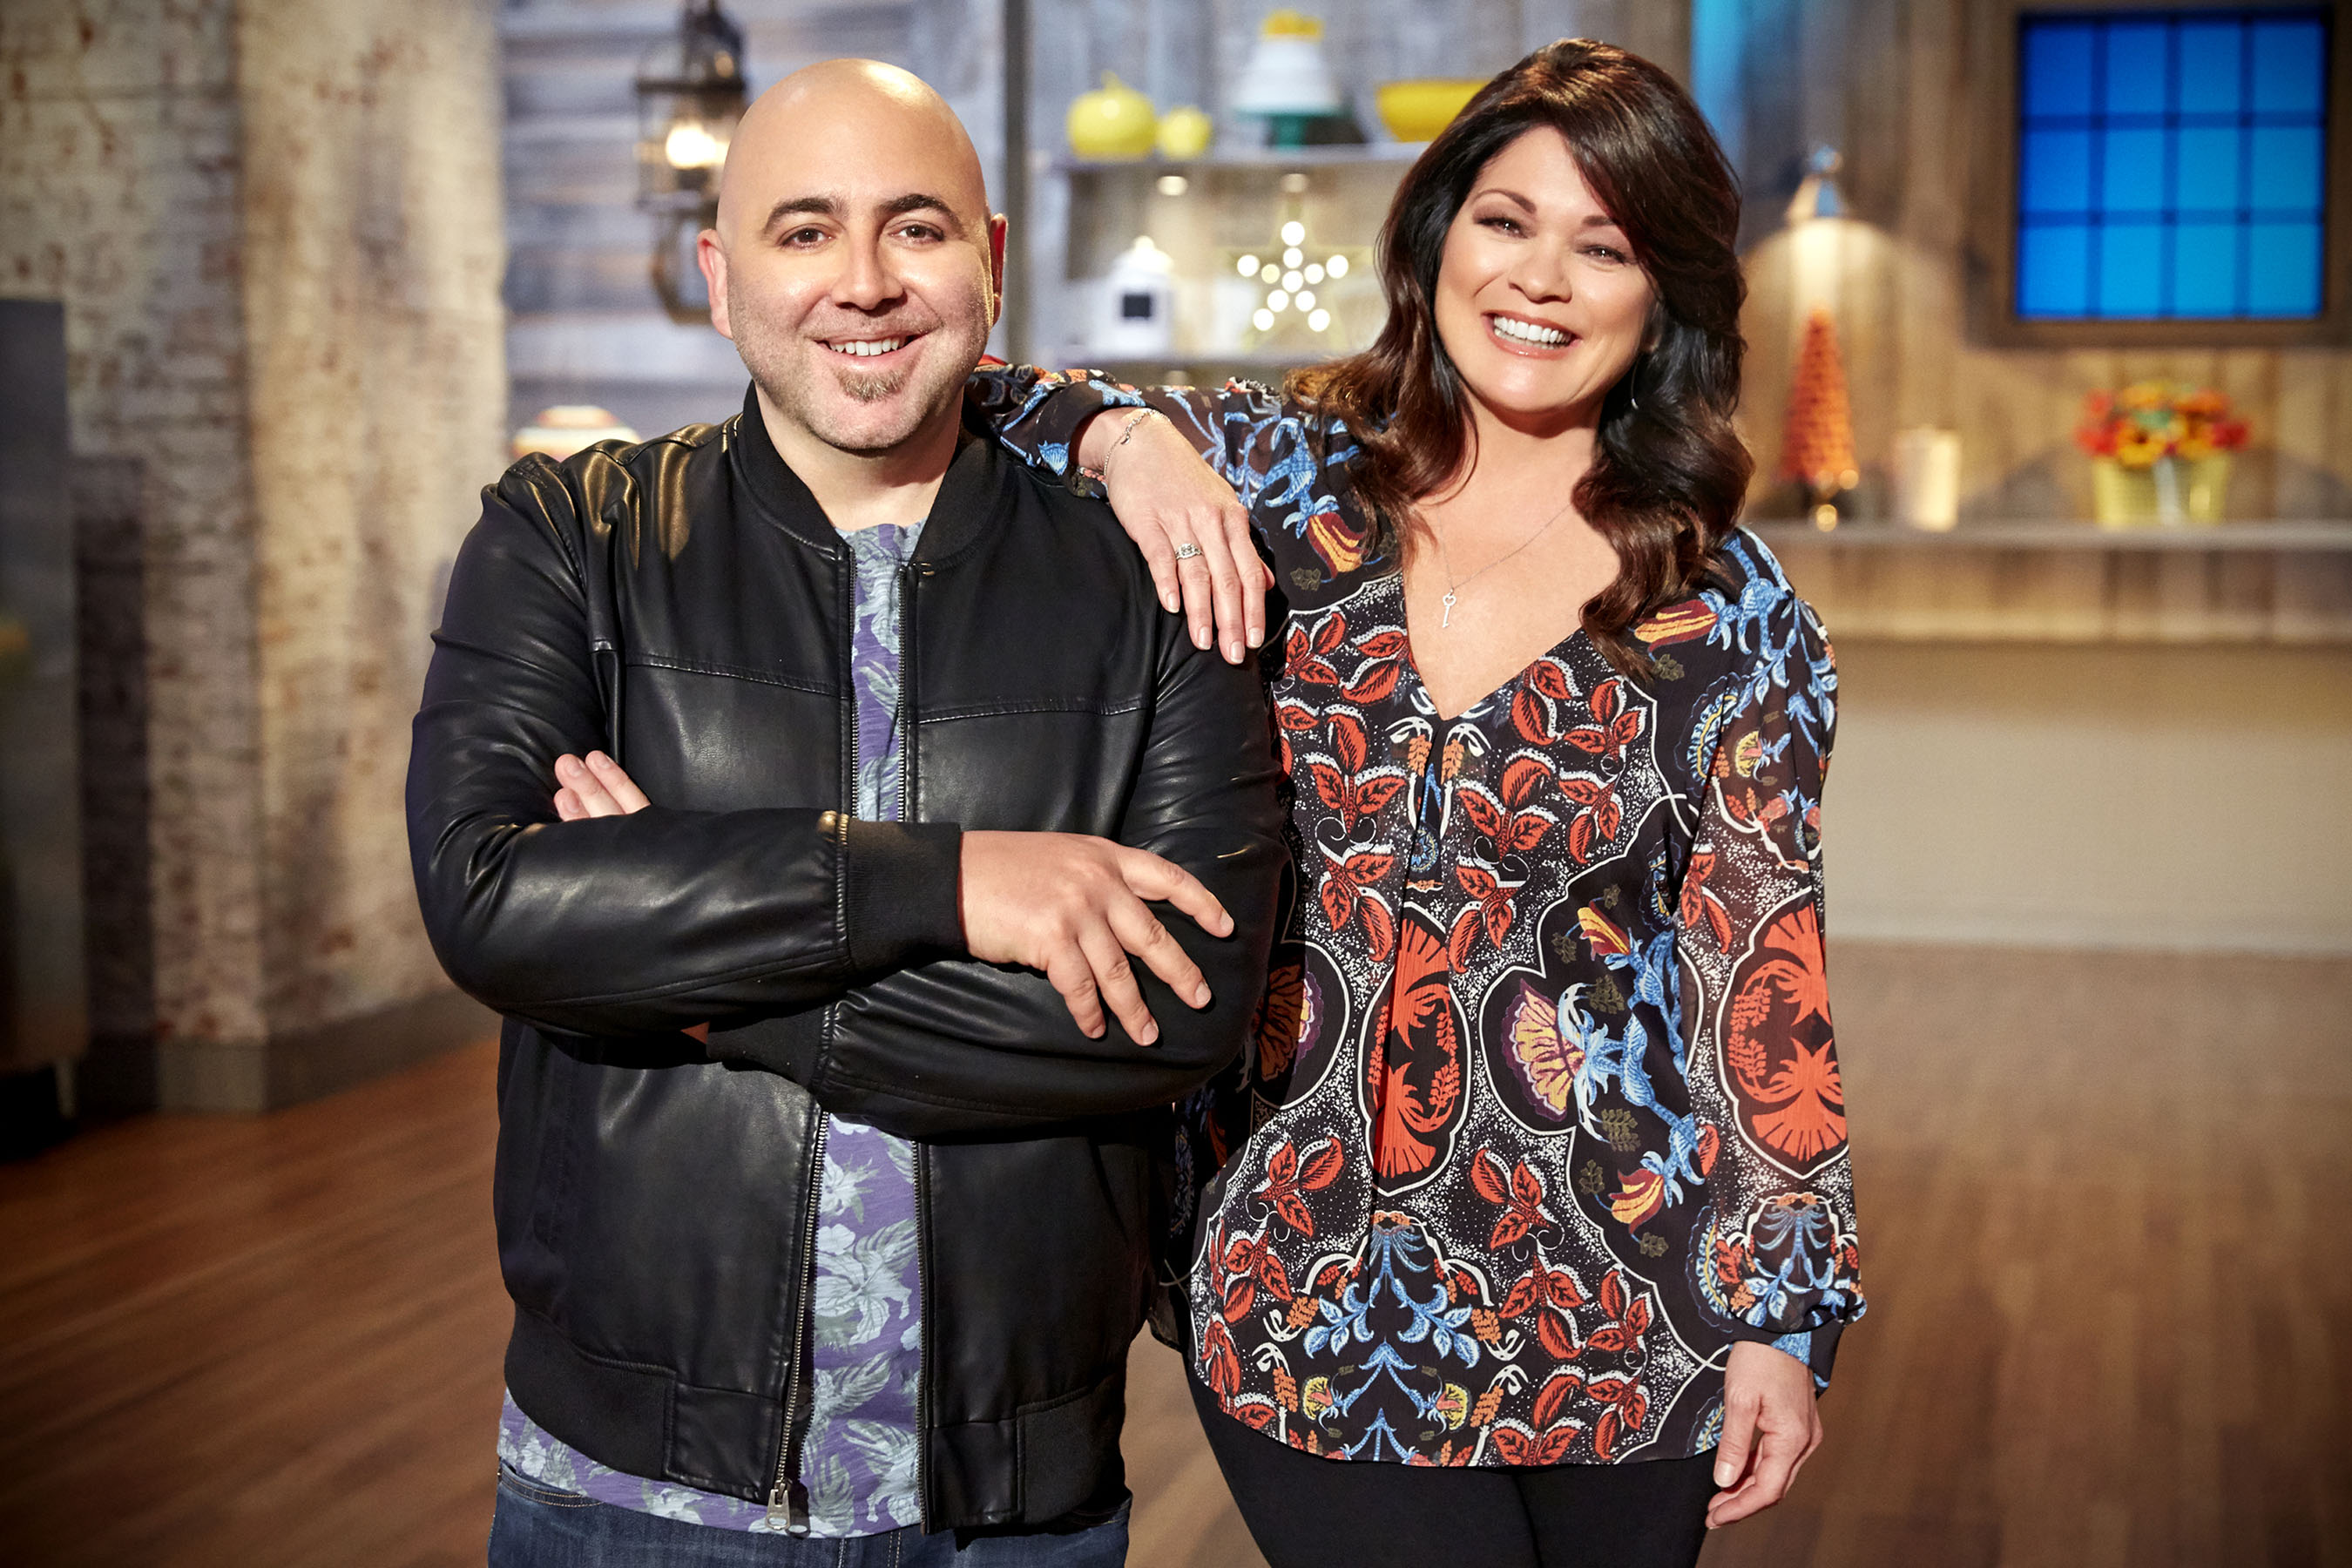 Hosts Duff Goldman and Valerie Bertinelli on Food Network's Kids Baking Championship